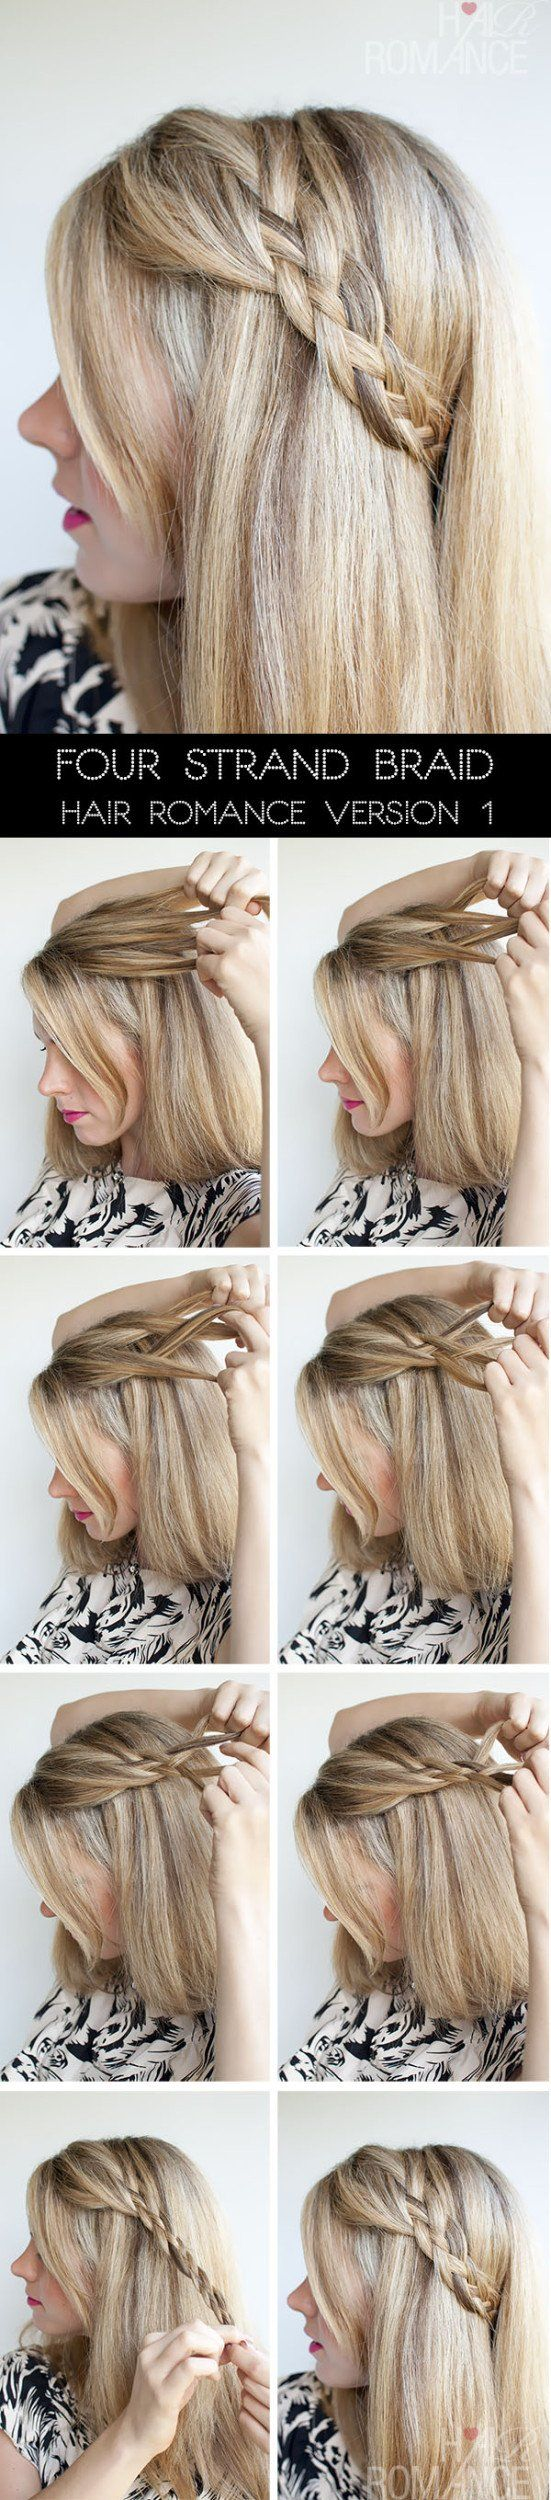 11.Easy Twisted Updo for Long or Short Hair